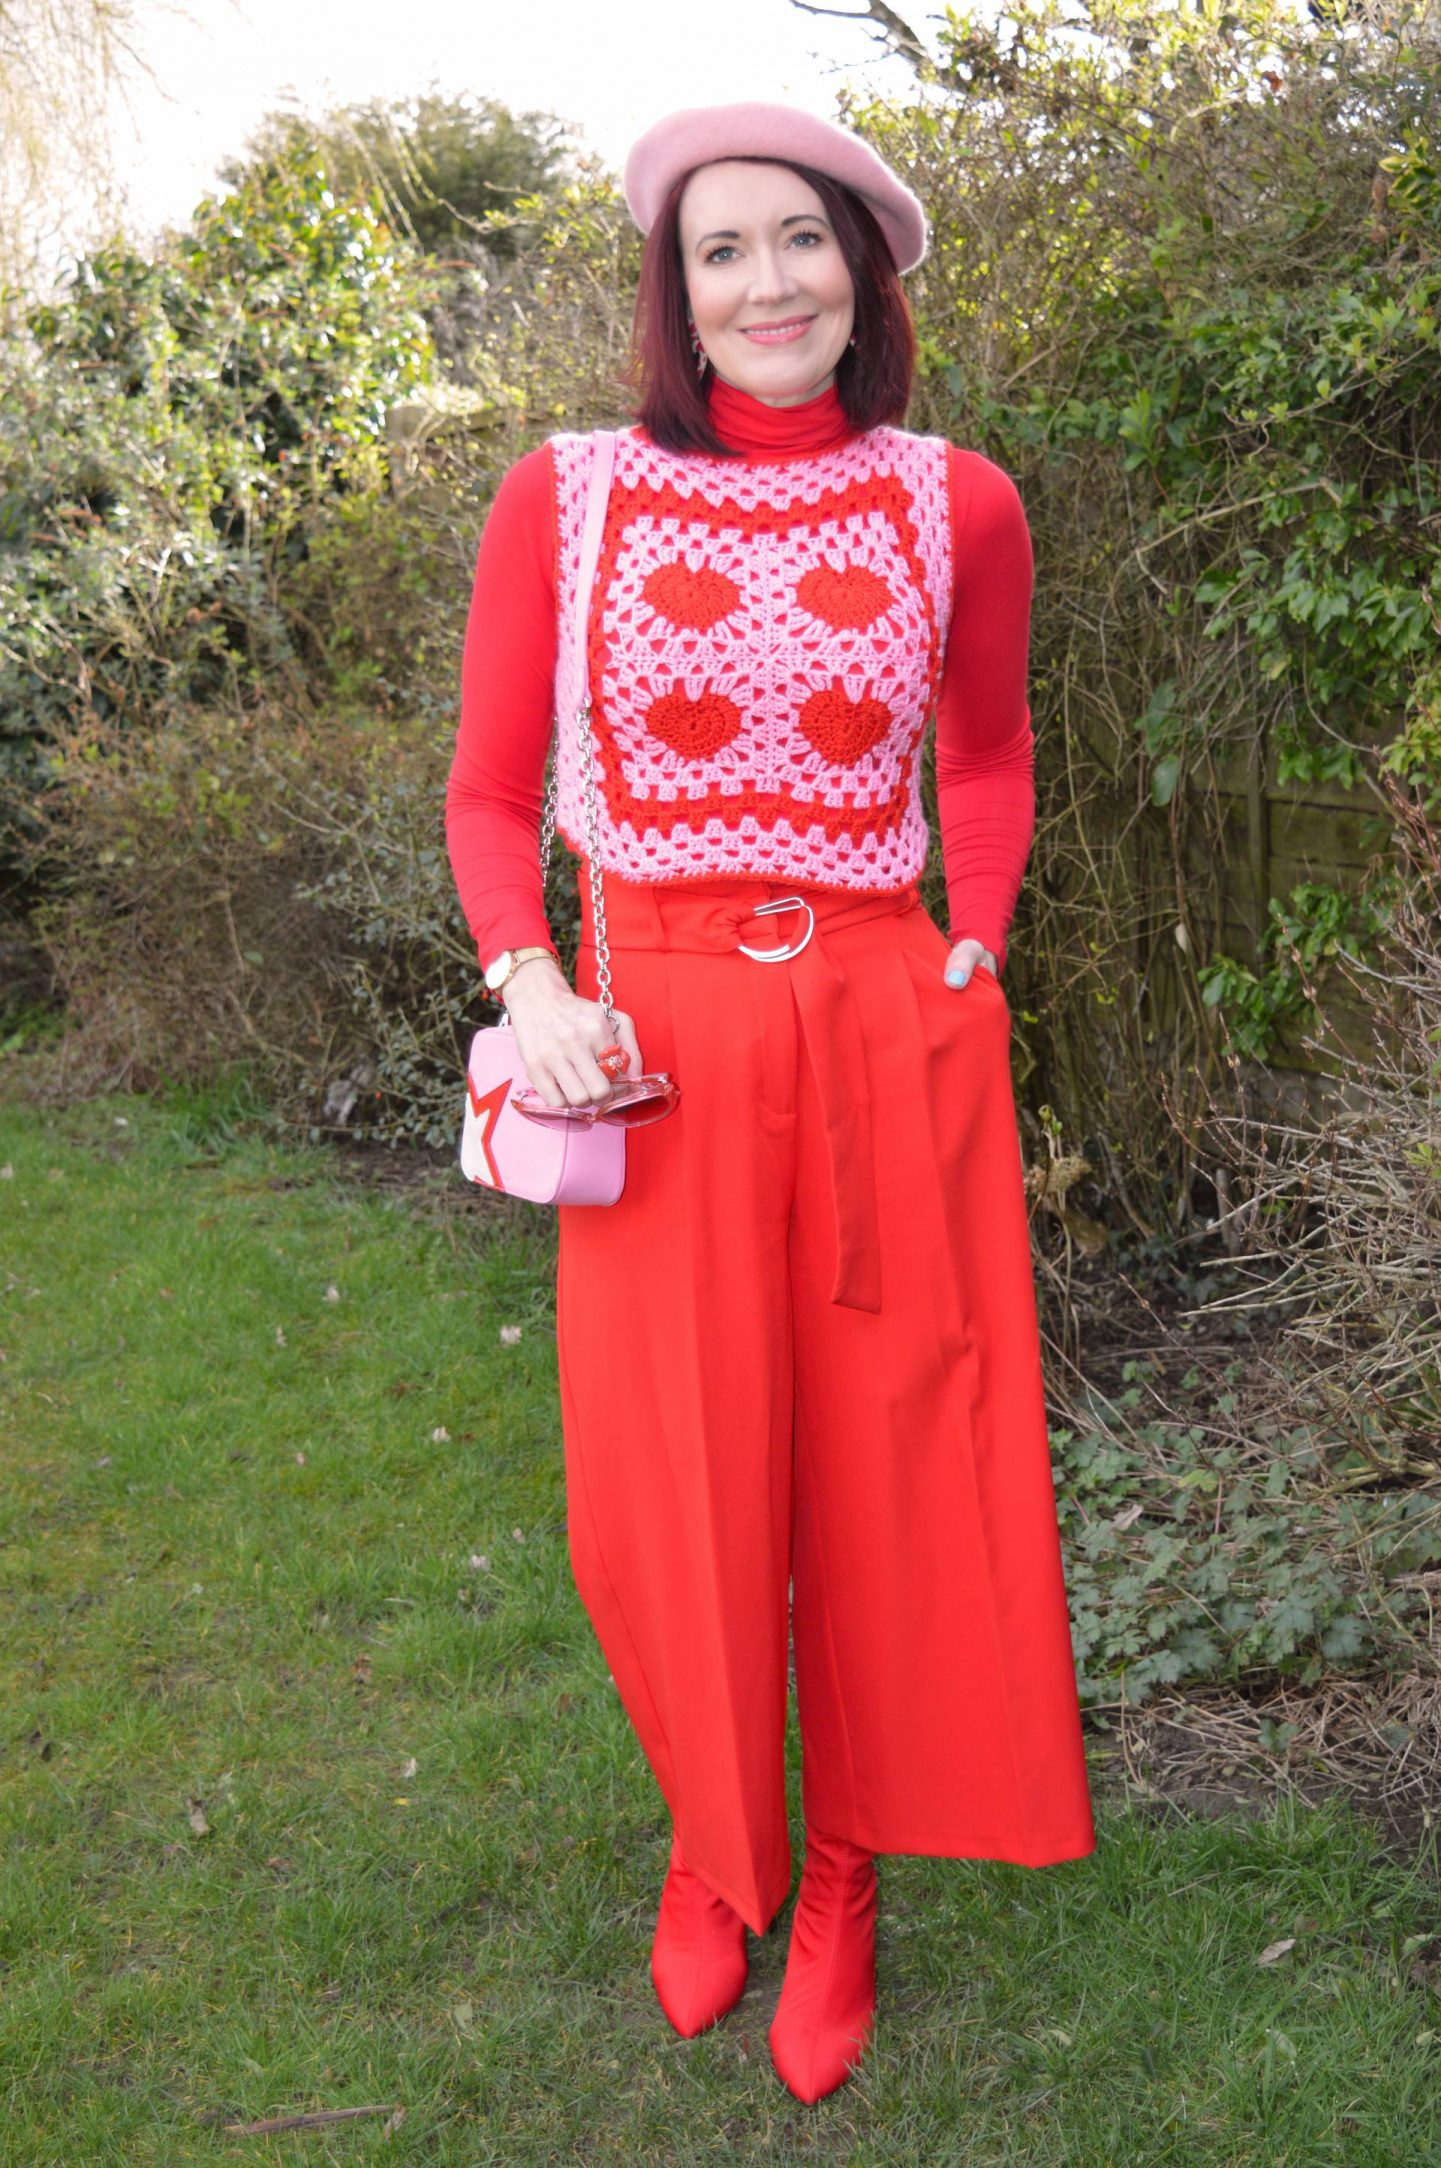 Pink and Bright Red, pink and red heart pattern crocheted vest, Asos red culottes, Asos pink jewelled beret, Raid red sock boots